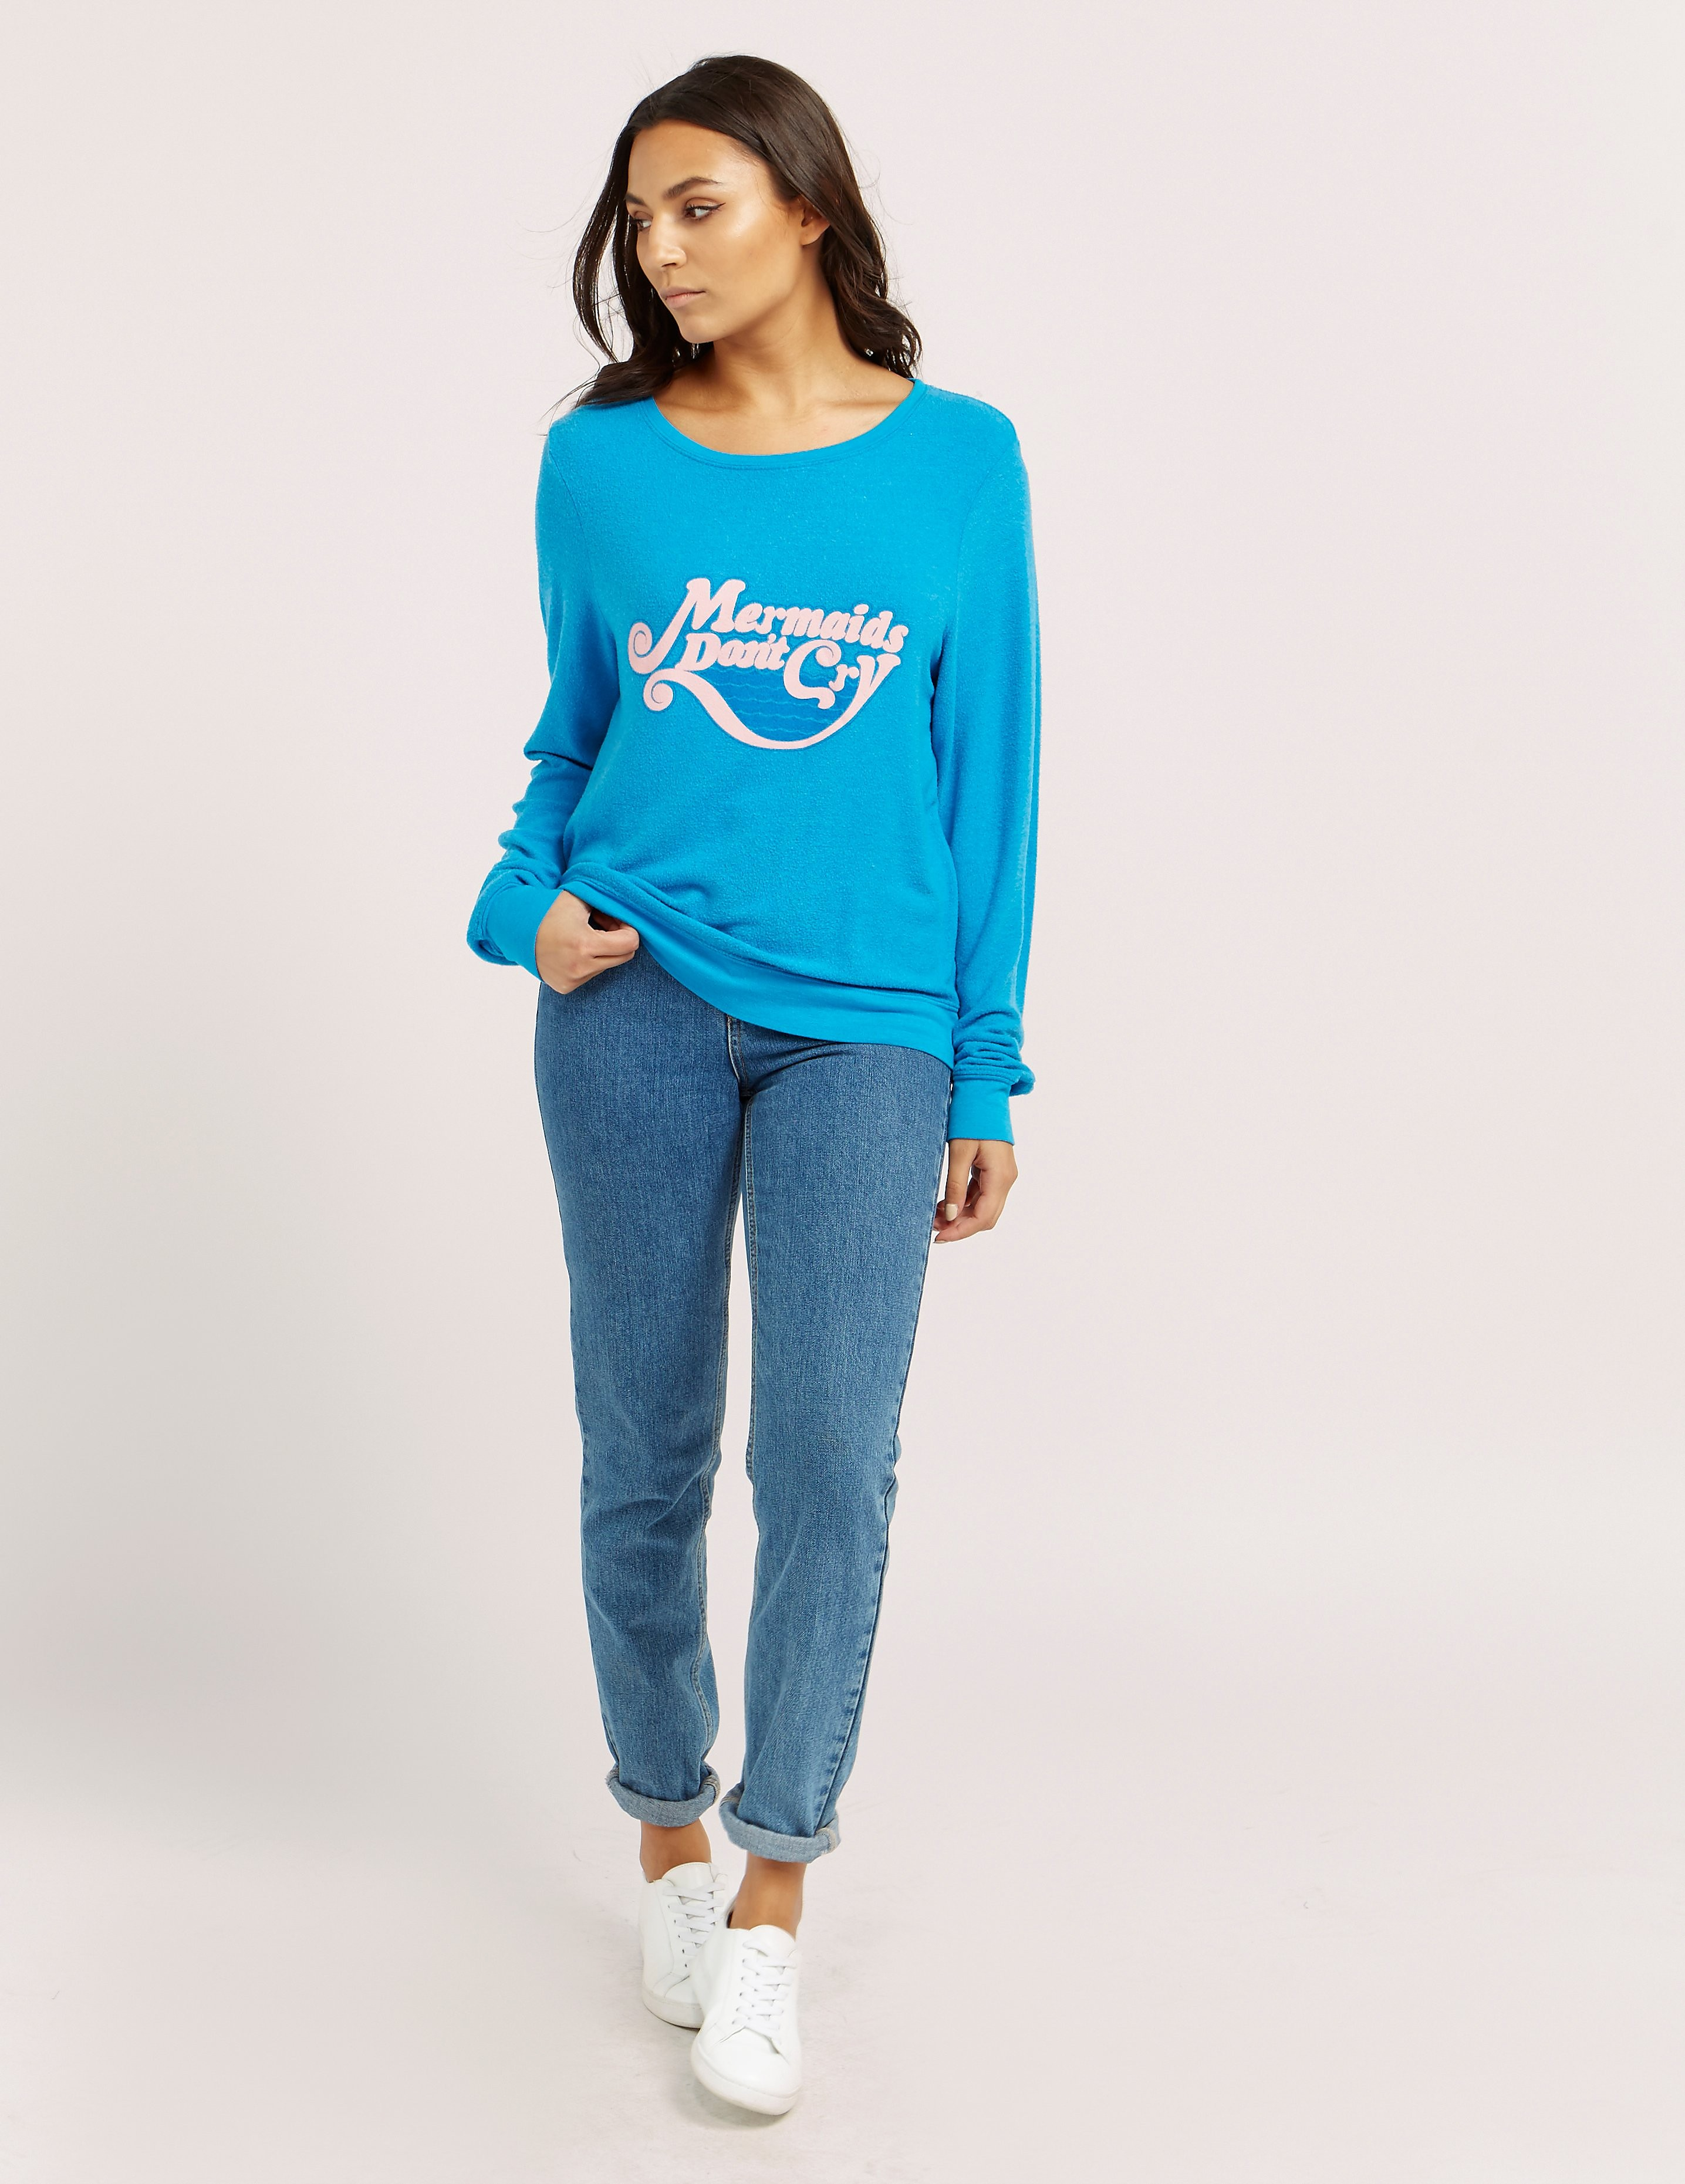 Wildfox Mermaids Sweatshirt